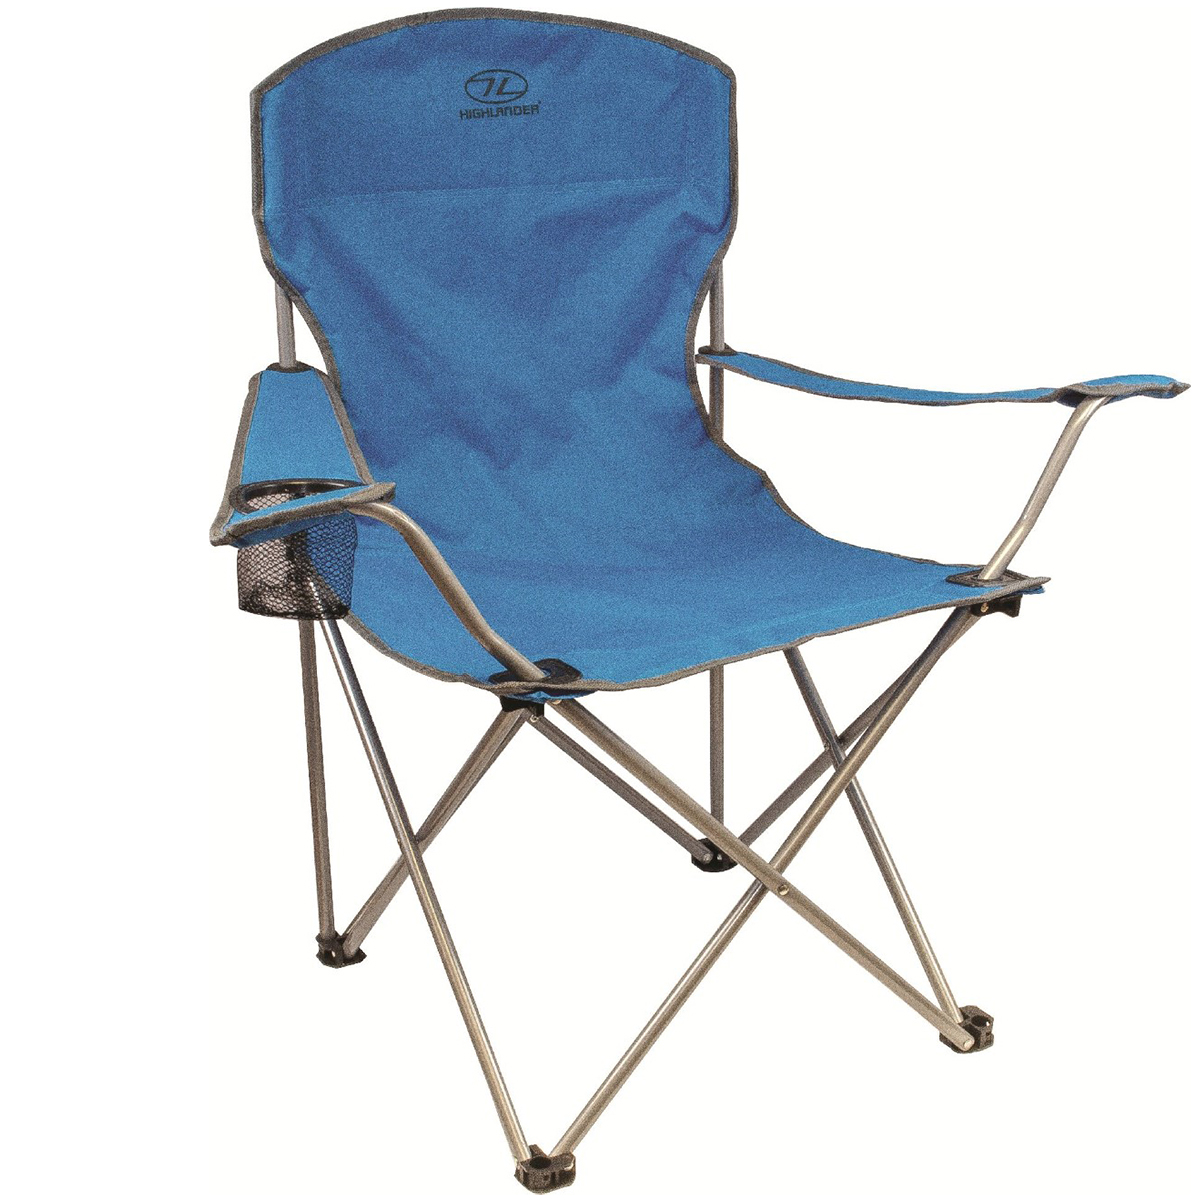 Highlander Folding Camp Chair Teal Camping Furniture